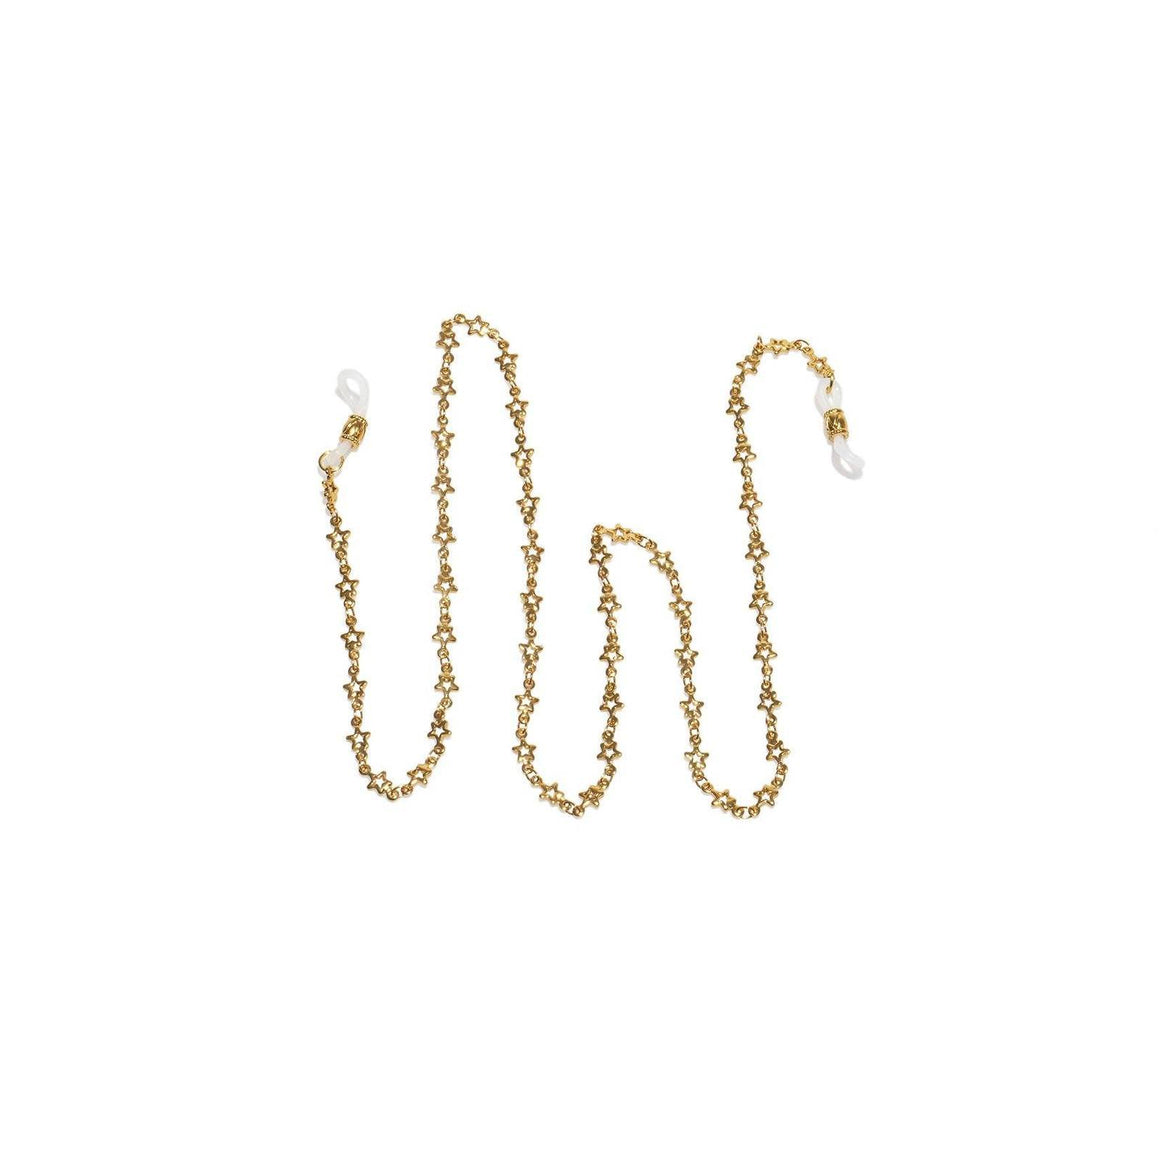 Le Specs Neck Chain Gold Star shop online or in store at Wallace&Gibbs